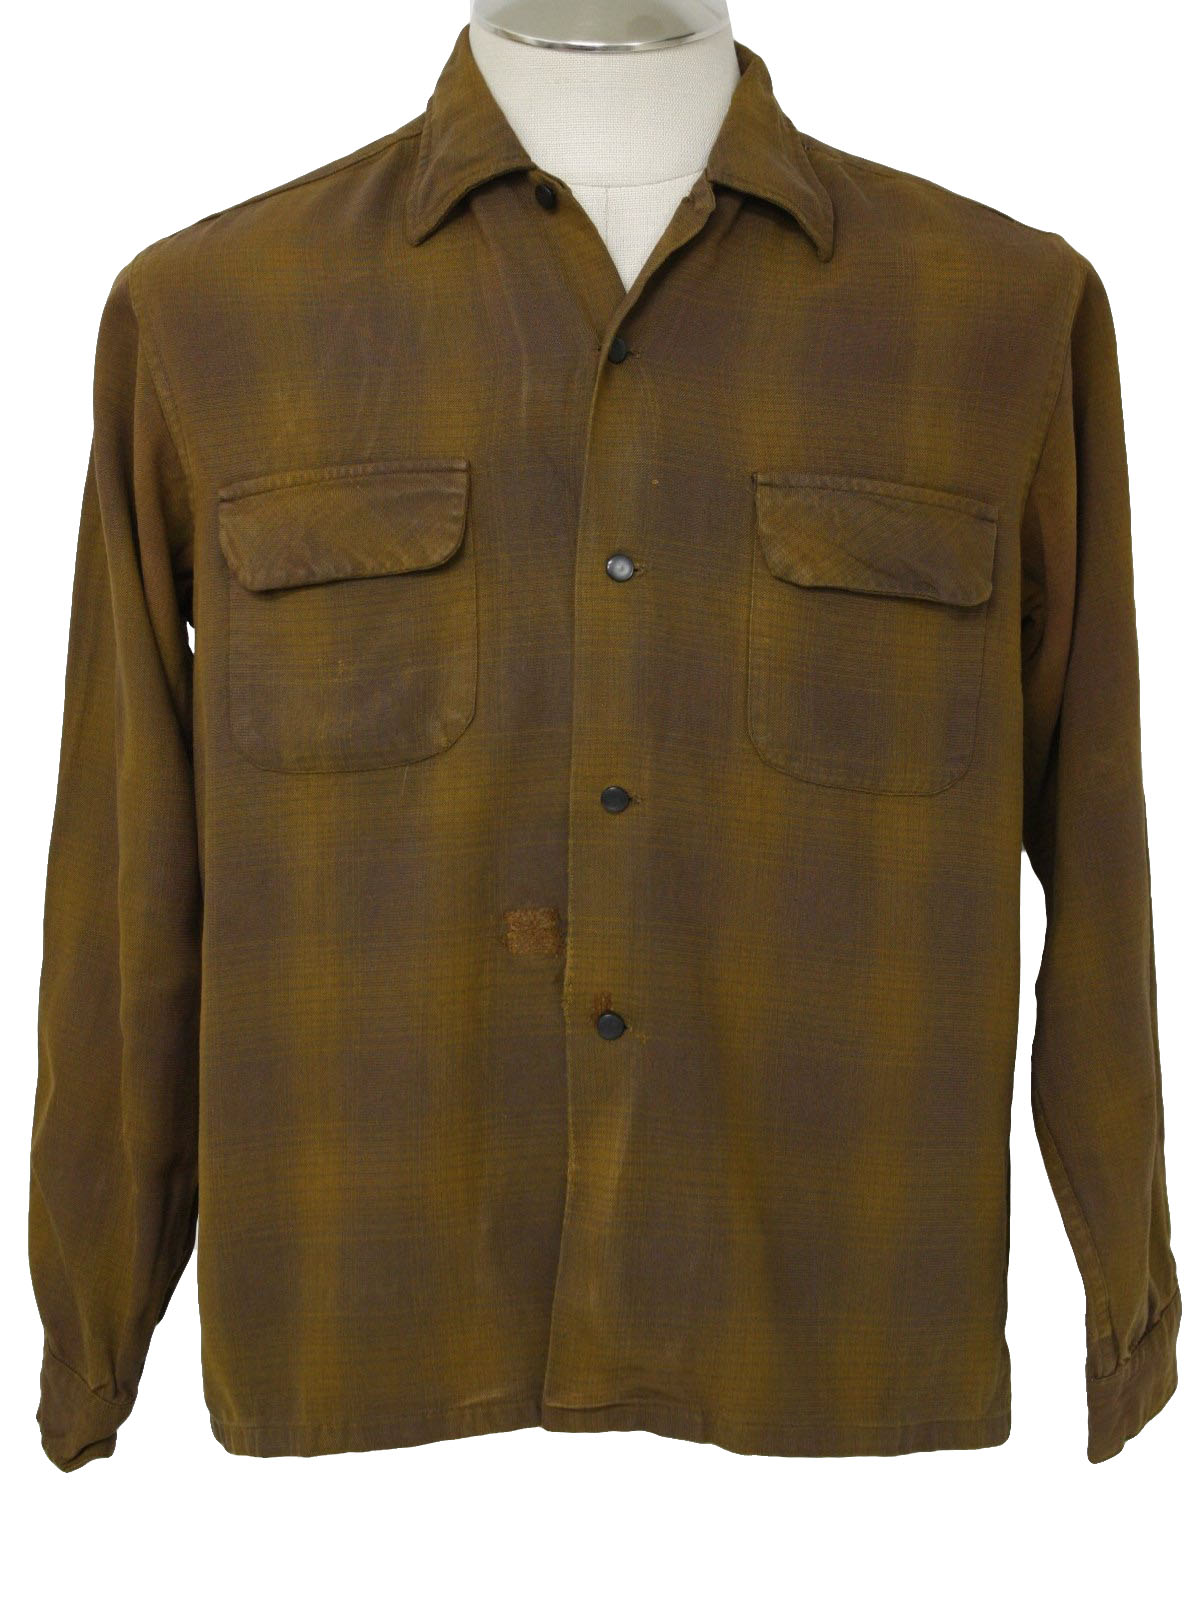 National Shirt Shops 50's Vintage Gabardine Shirt: 50s -National ...